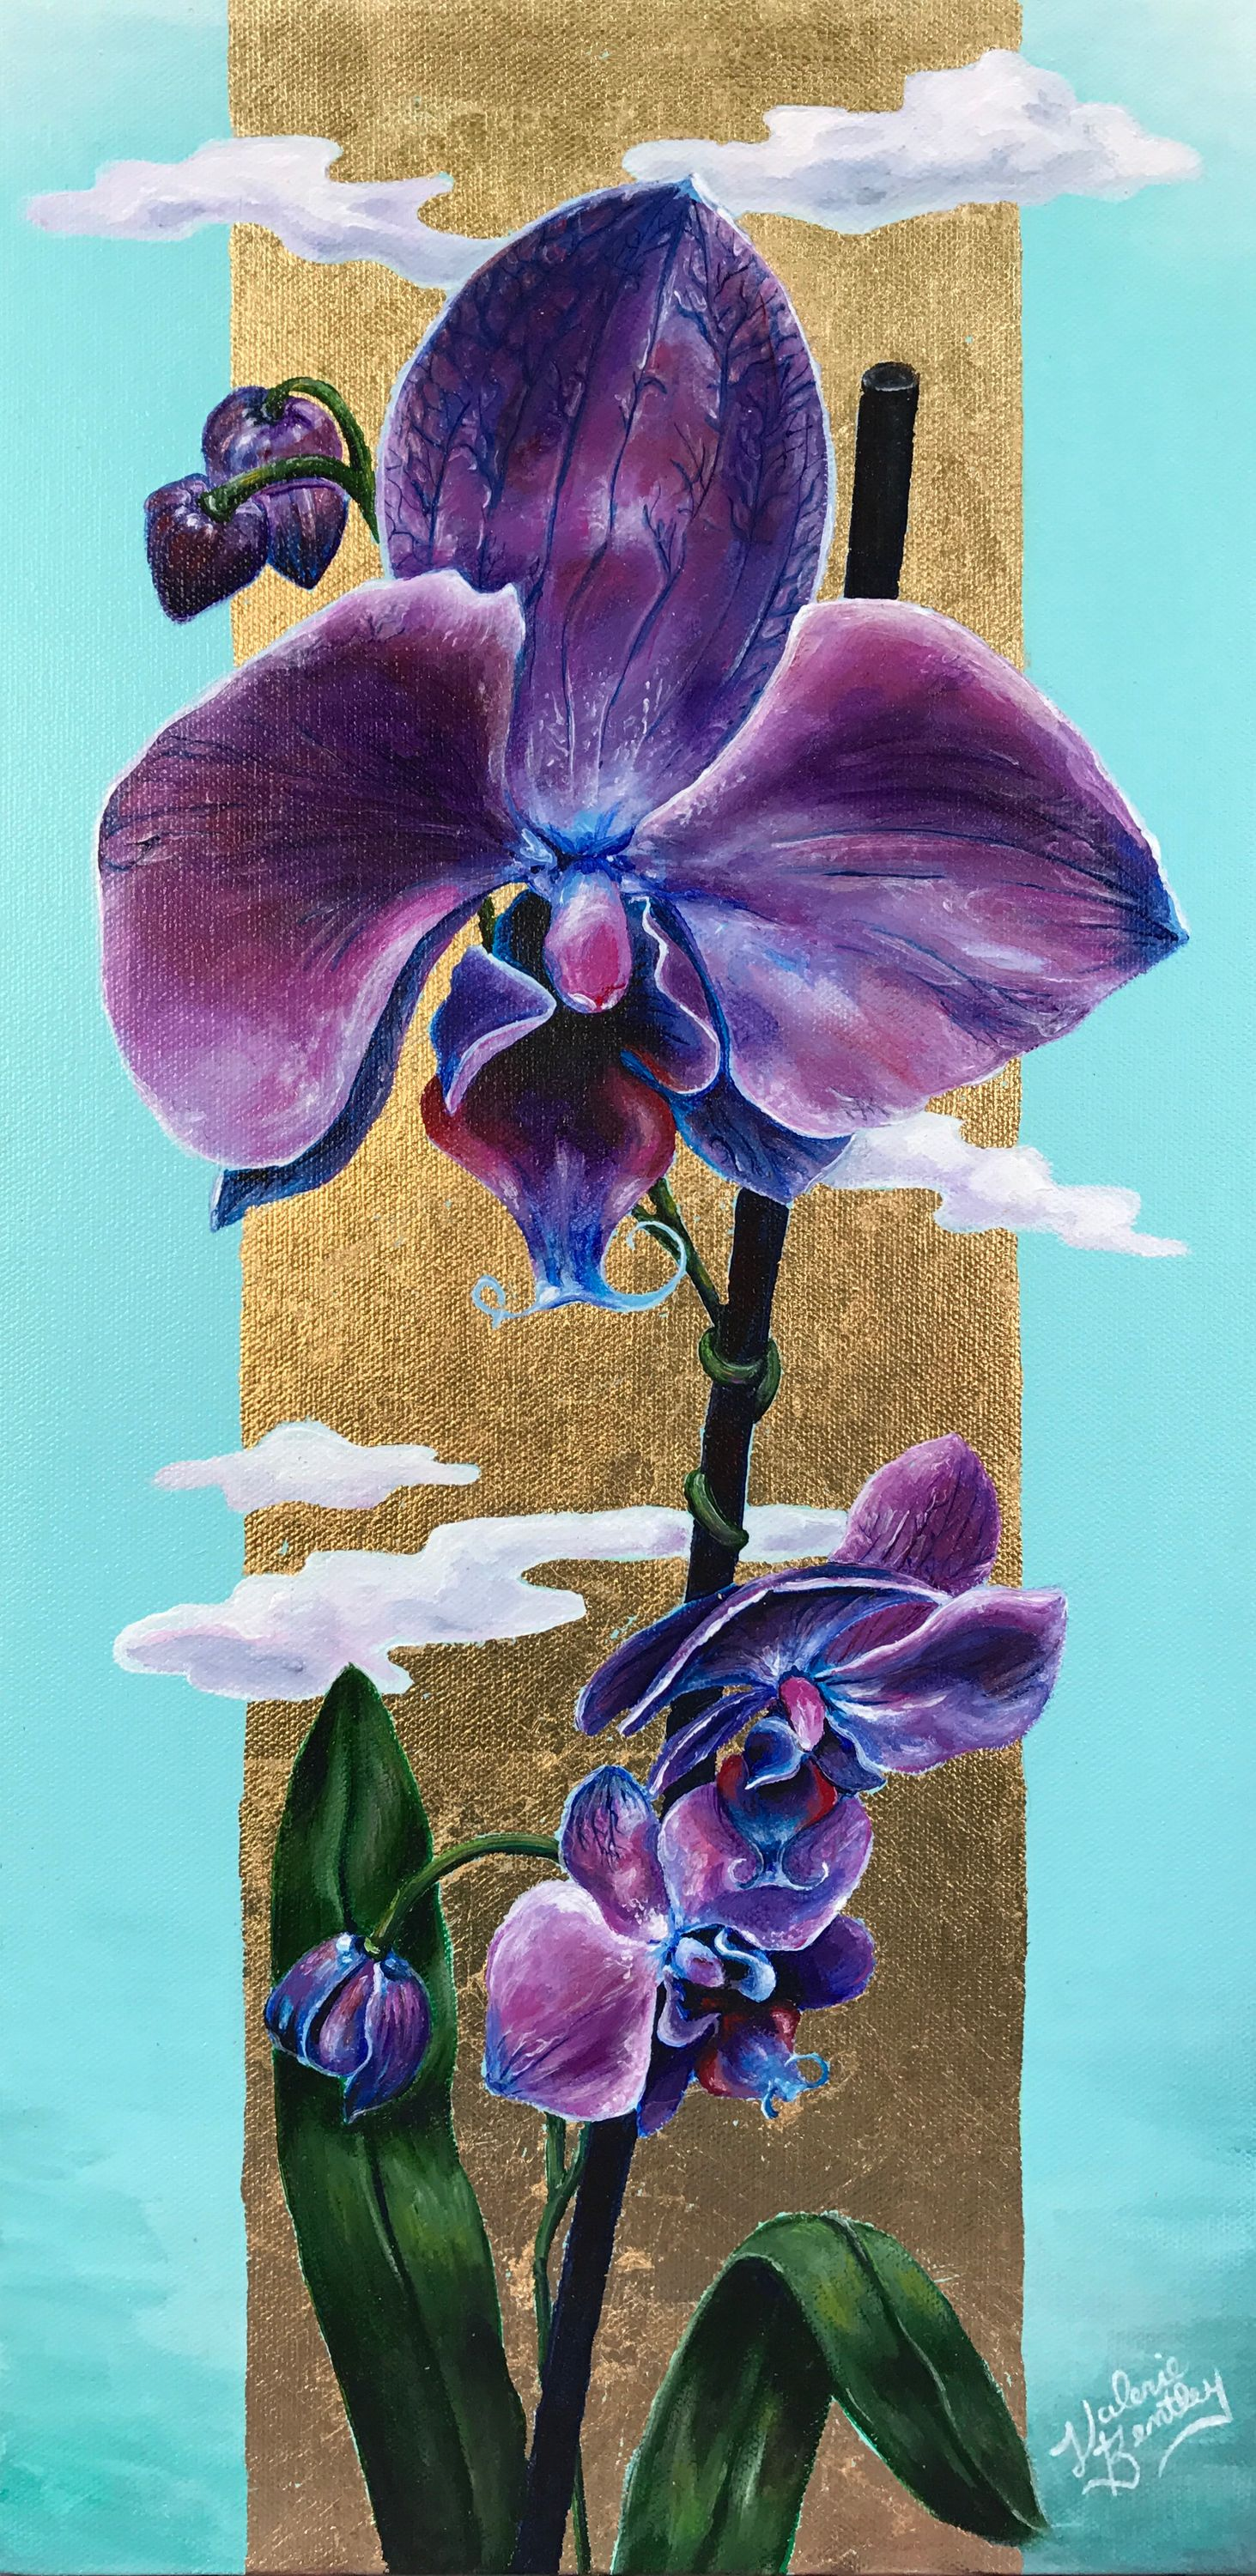 Valerie_Bentley_Orchid_austin_art.jpg